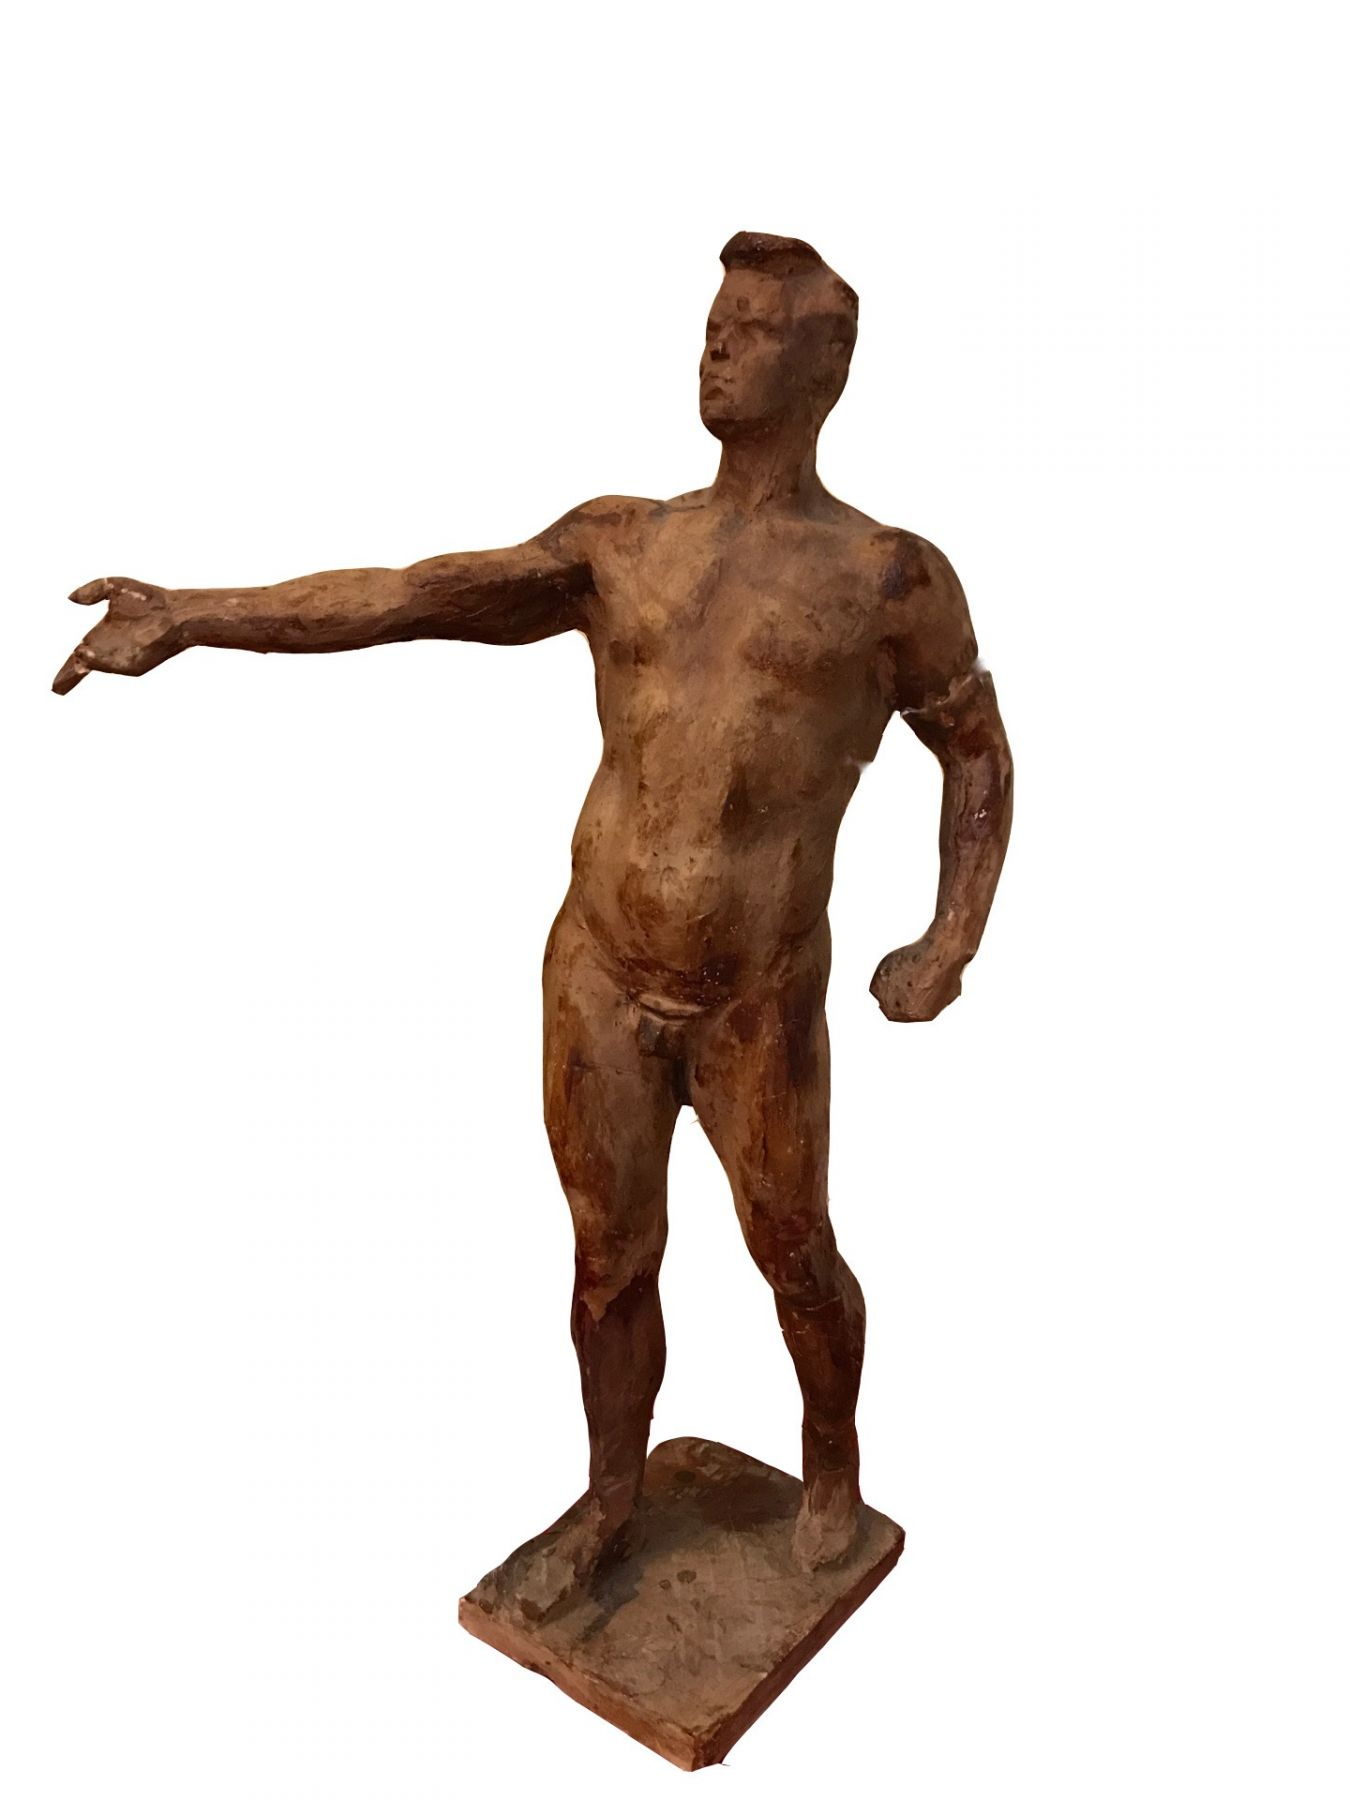 Etude of male sculpture for composition